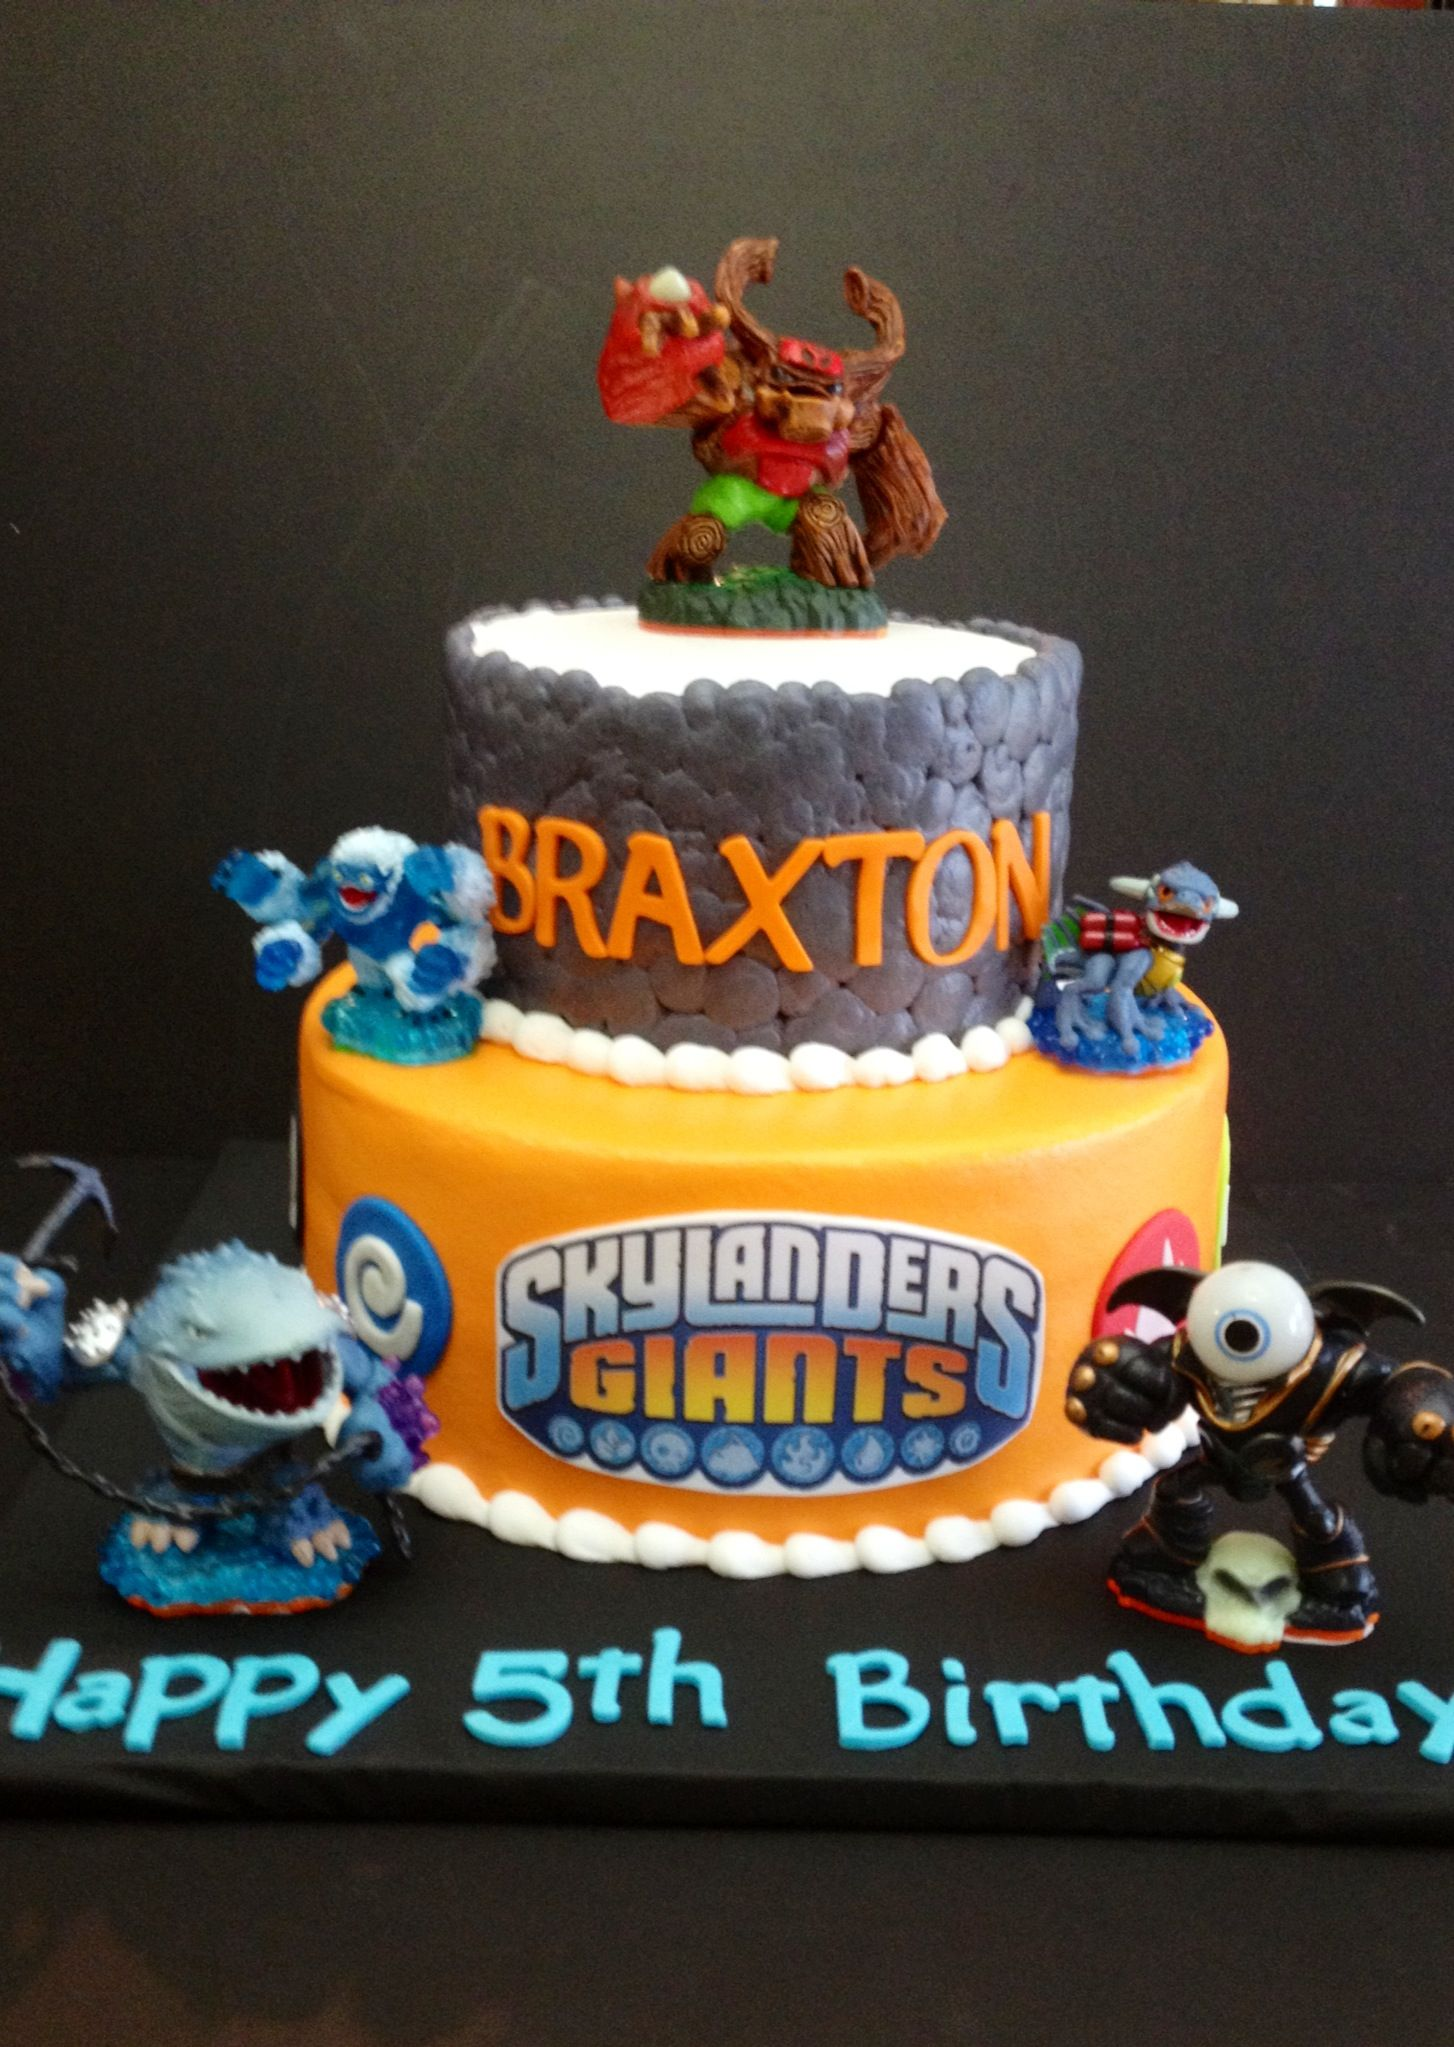 Brilliant Sky Landers Birthday Cake Made By Teresa Lynn Cakes Llc With Funny Birthday Cards Online Inifodamsfinfo